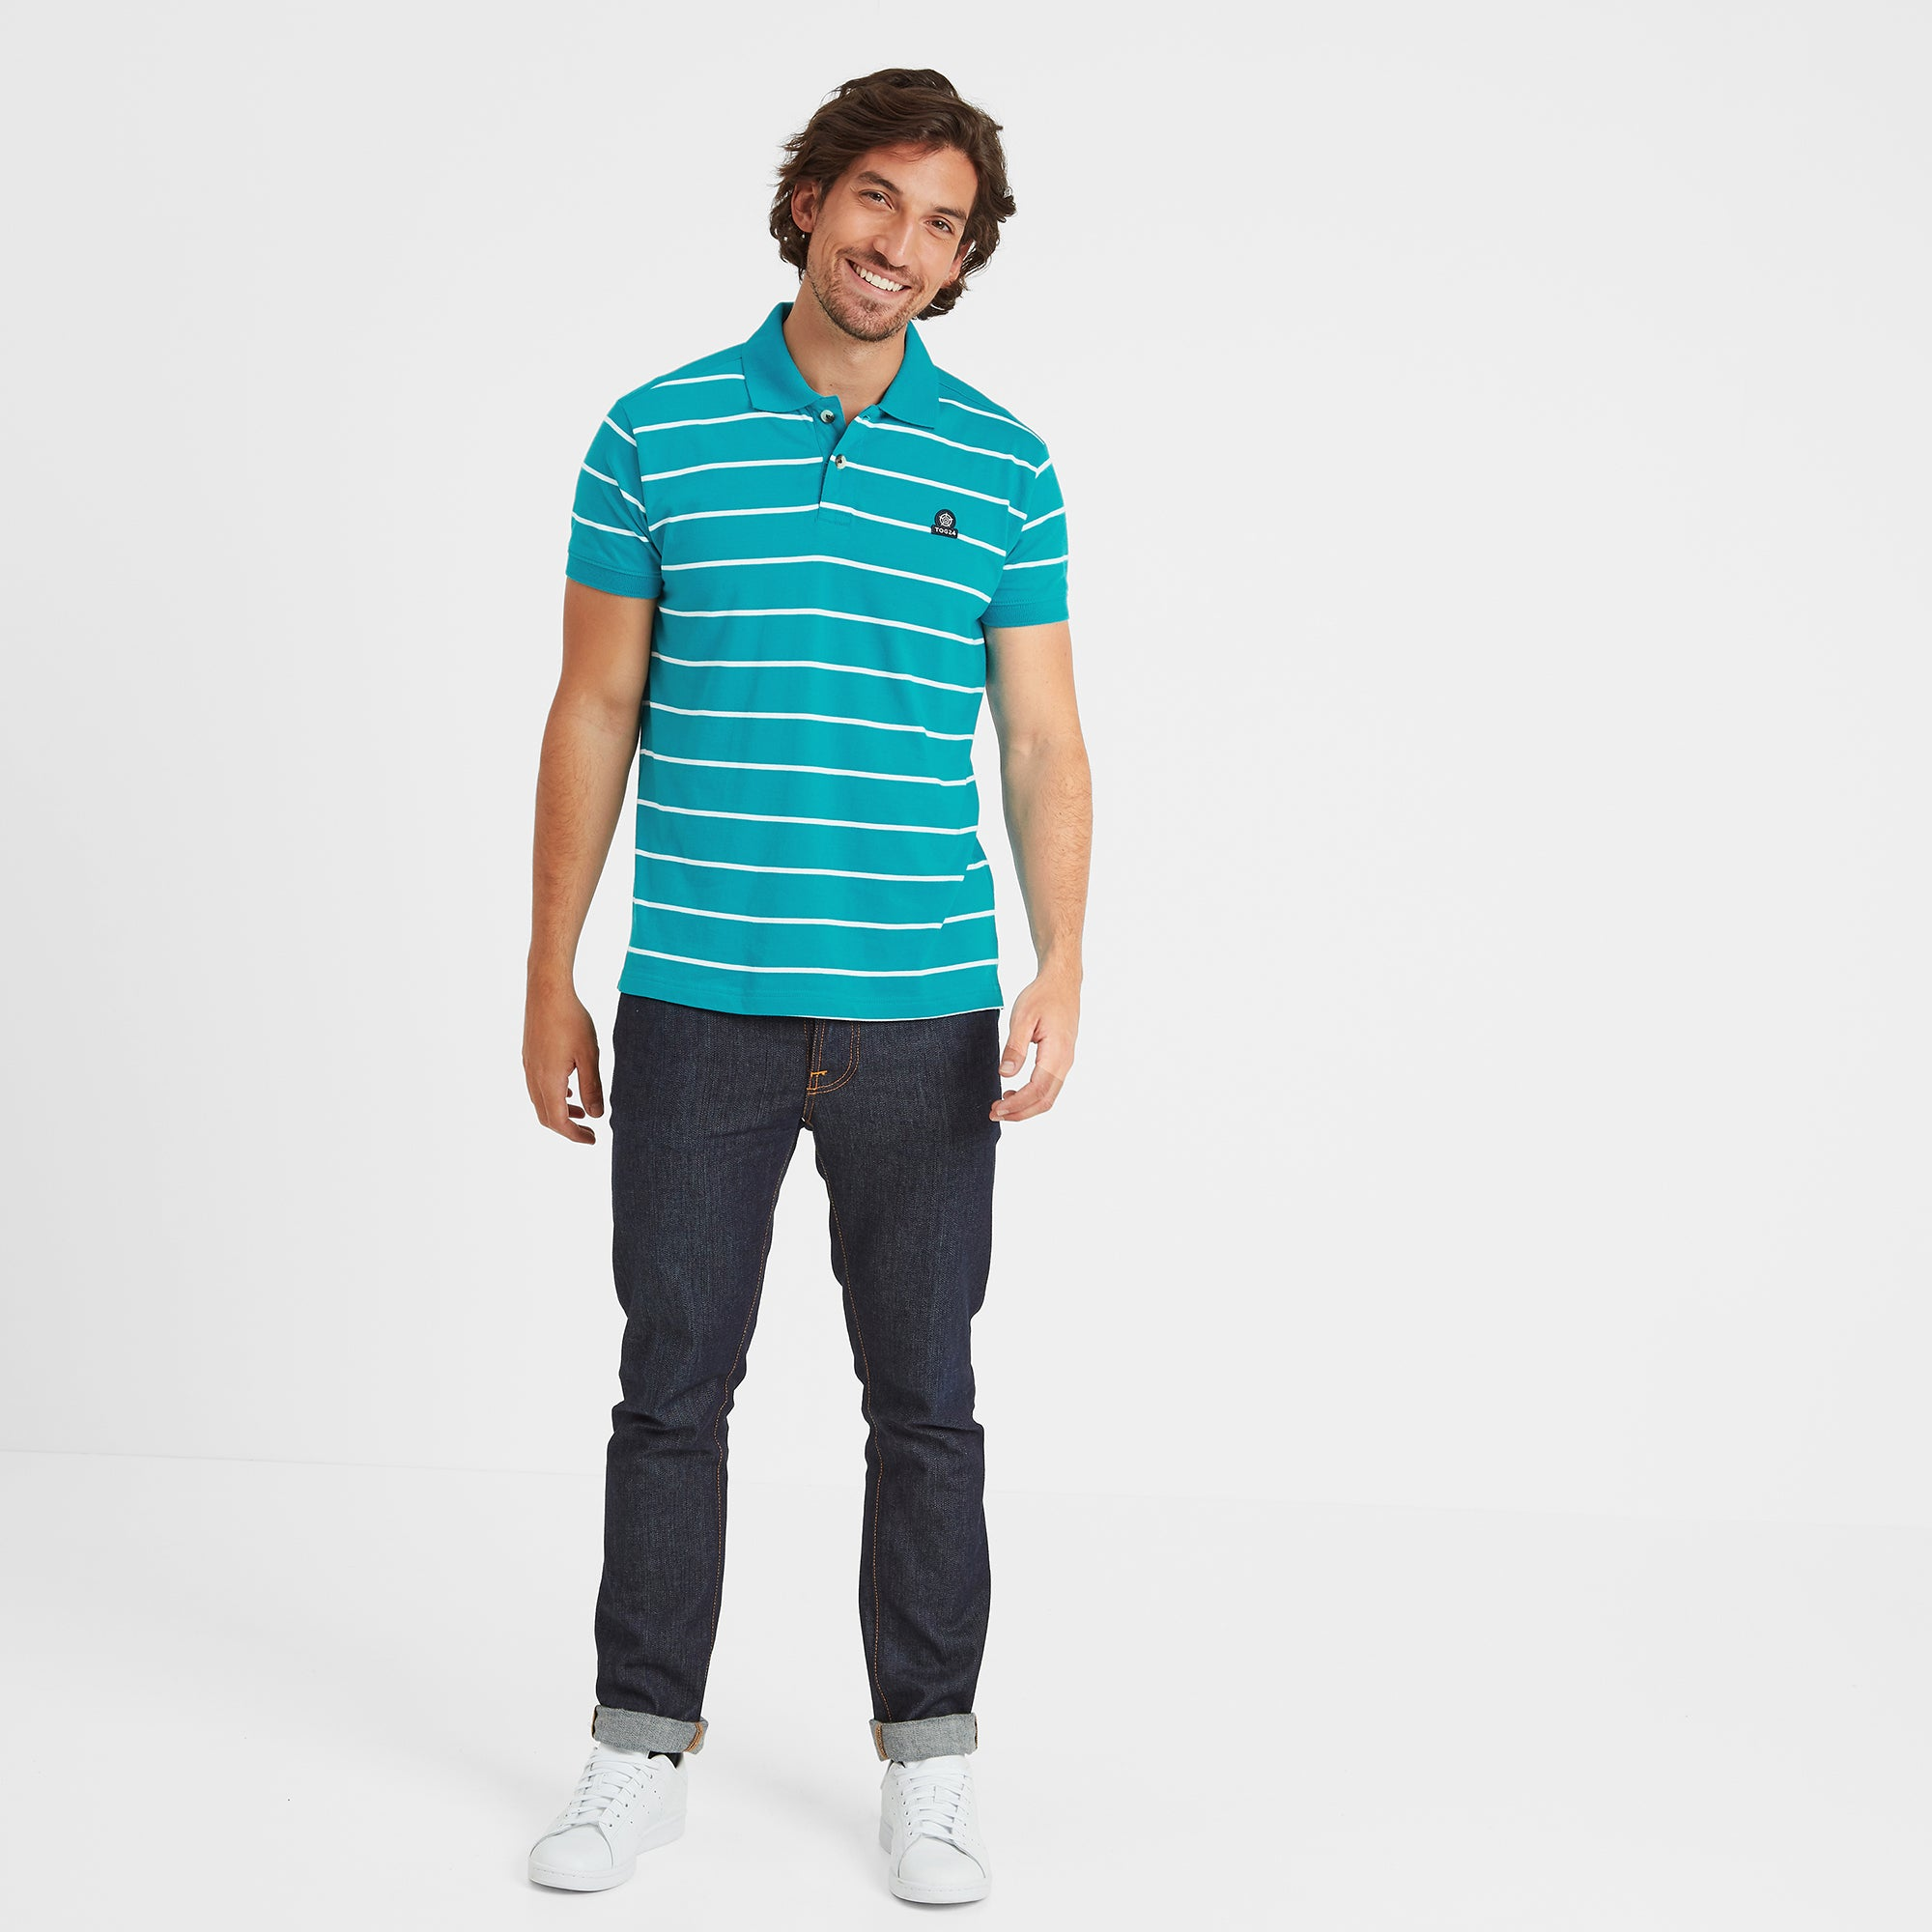 Alfie Mens Stripe Polo Shirt - Blue Jewel